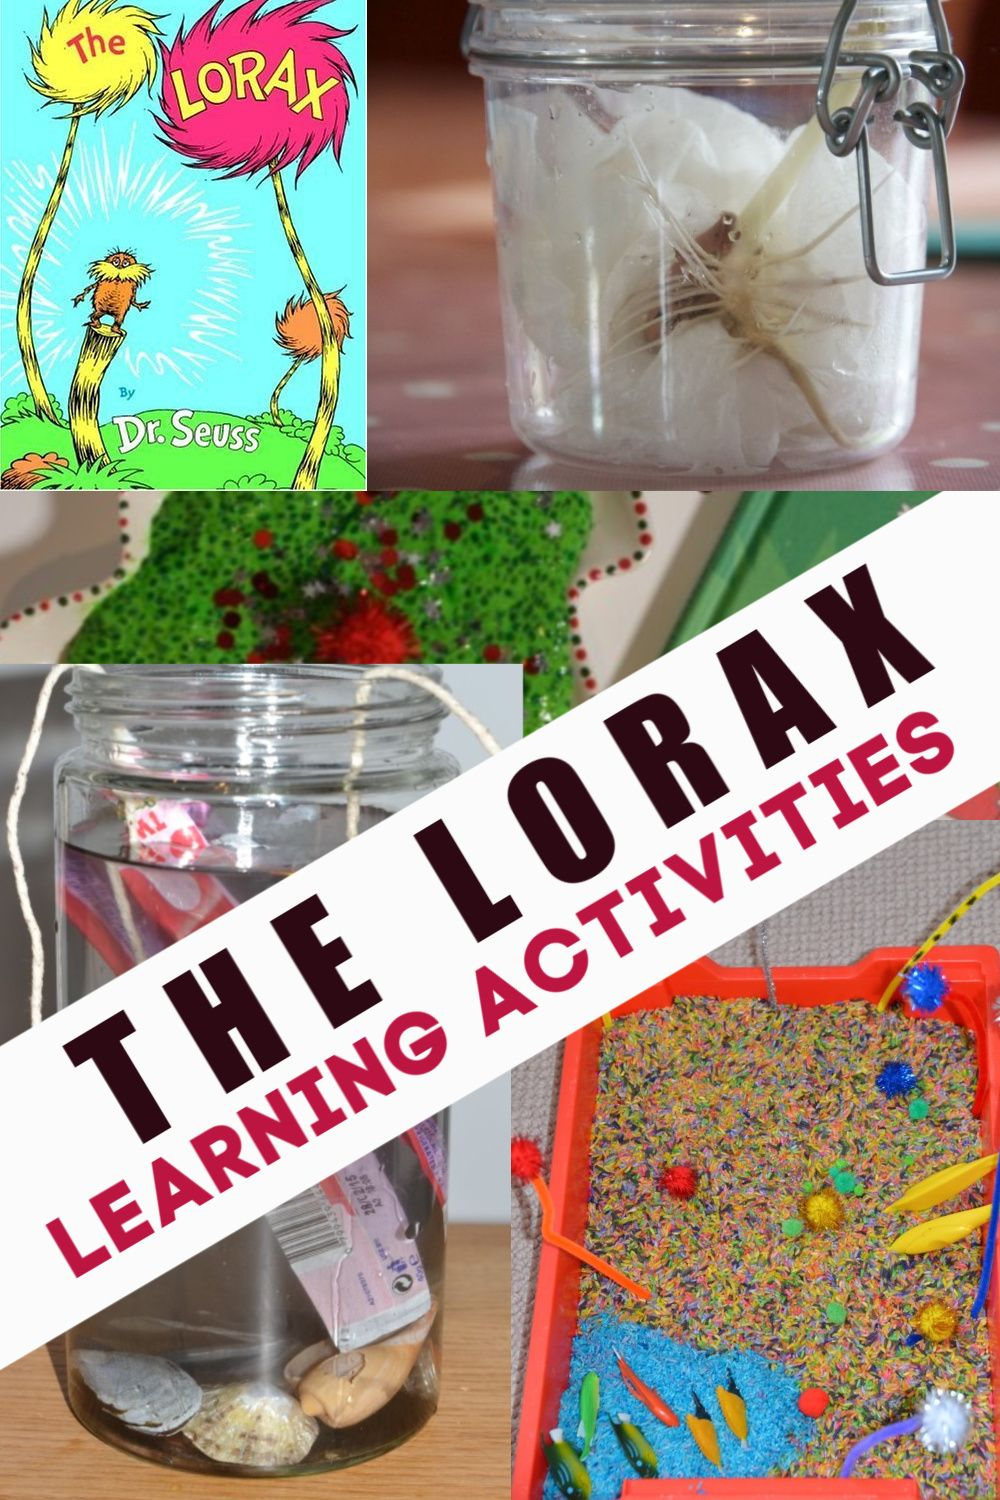 Dr Seuss Science Activities : seuss, science, activities, Seuss, Science, Experiments, Kids,, Activities, Lorax